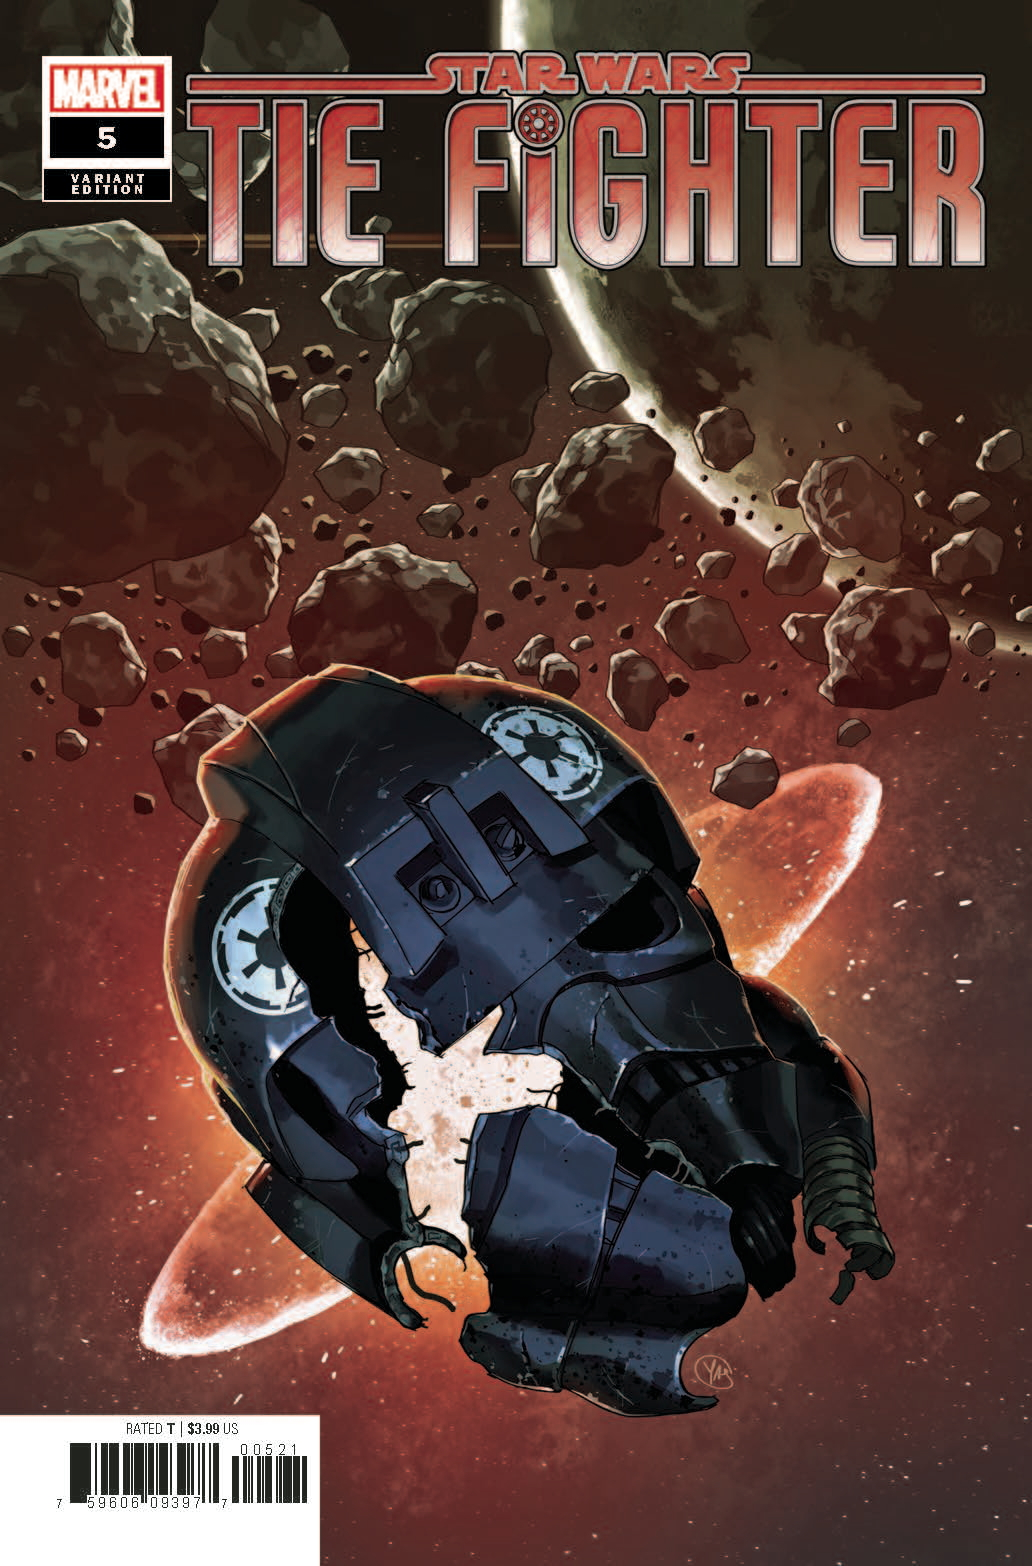 TIE Fighter #5 (Yasmine Putri Variant Cover) (21.08.2019)